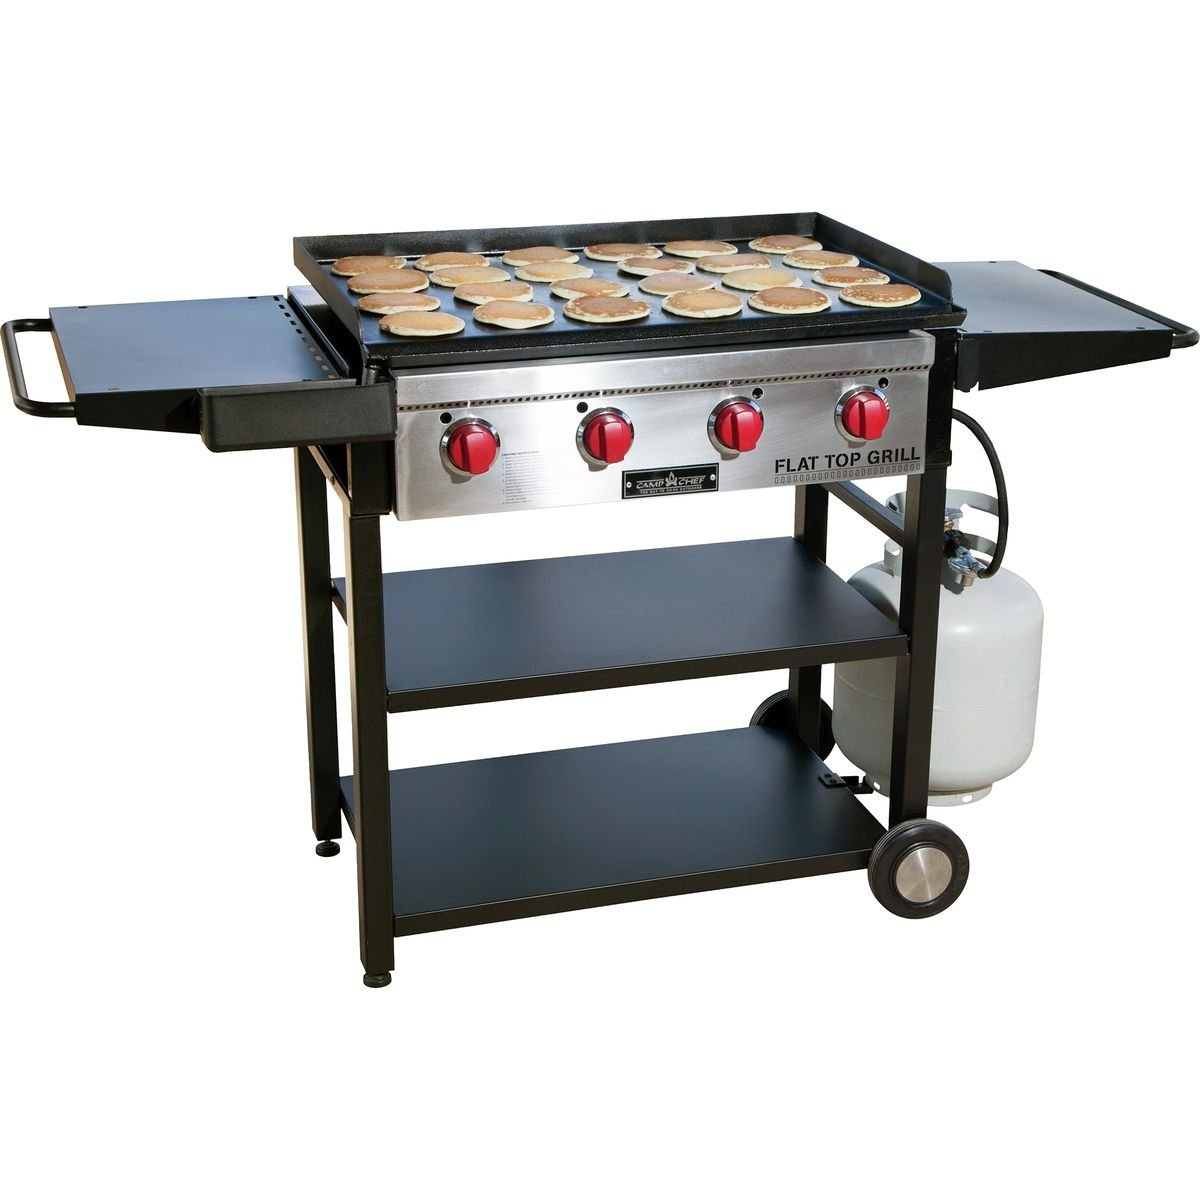 Best Camp Chef Flat Top Grill Review